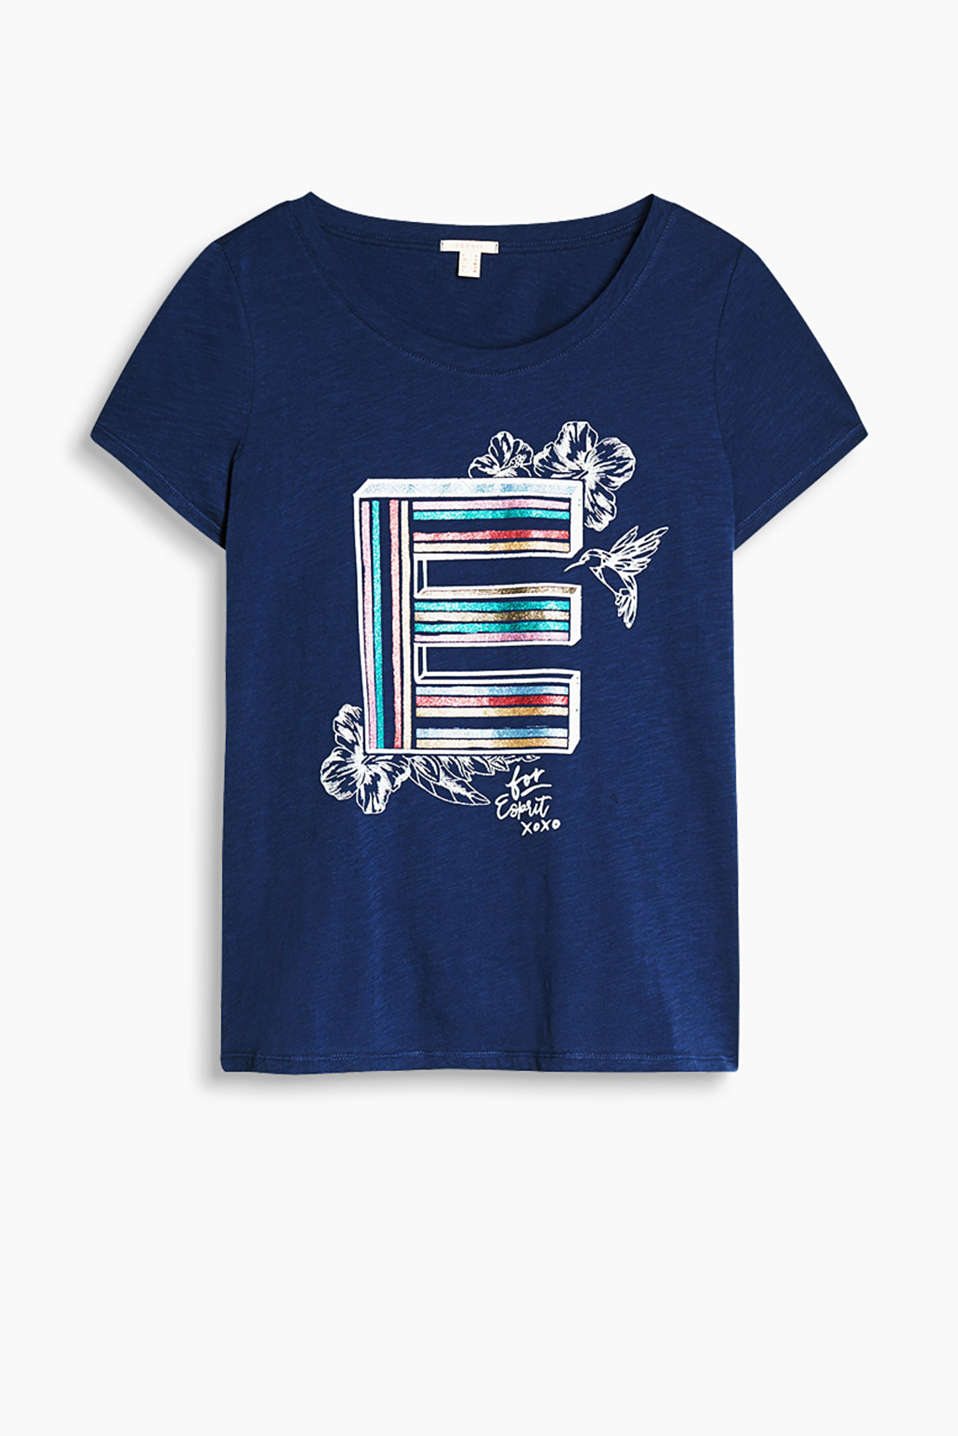 Airy slub jersey T-shirt with a colourful glitter print, 100% cotton